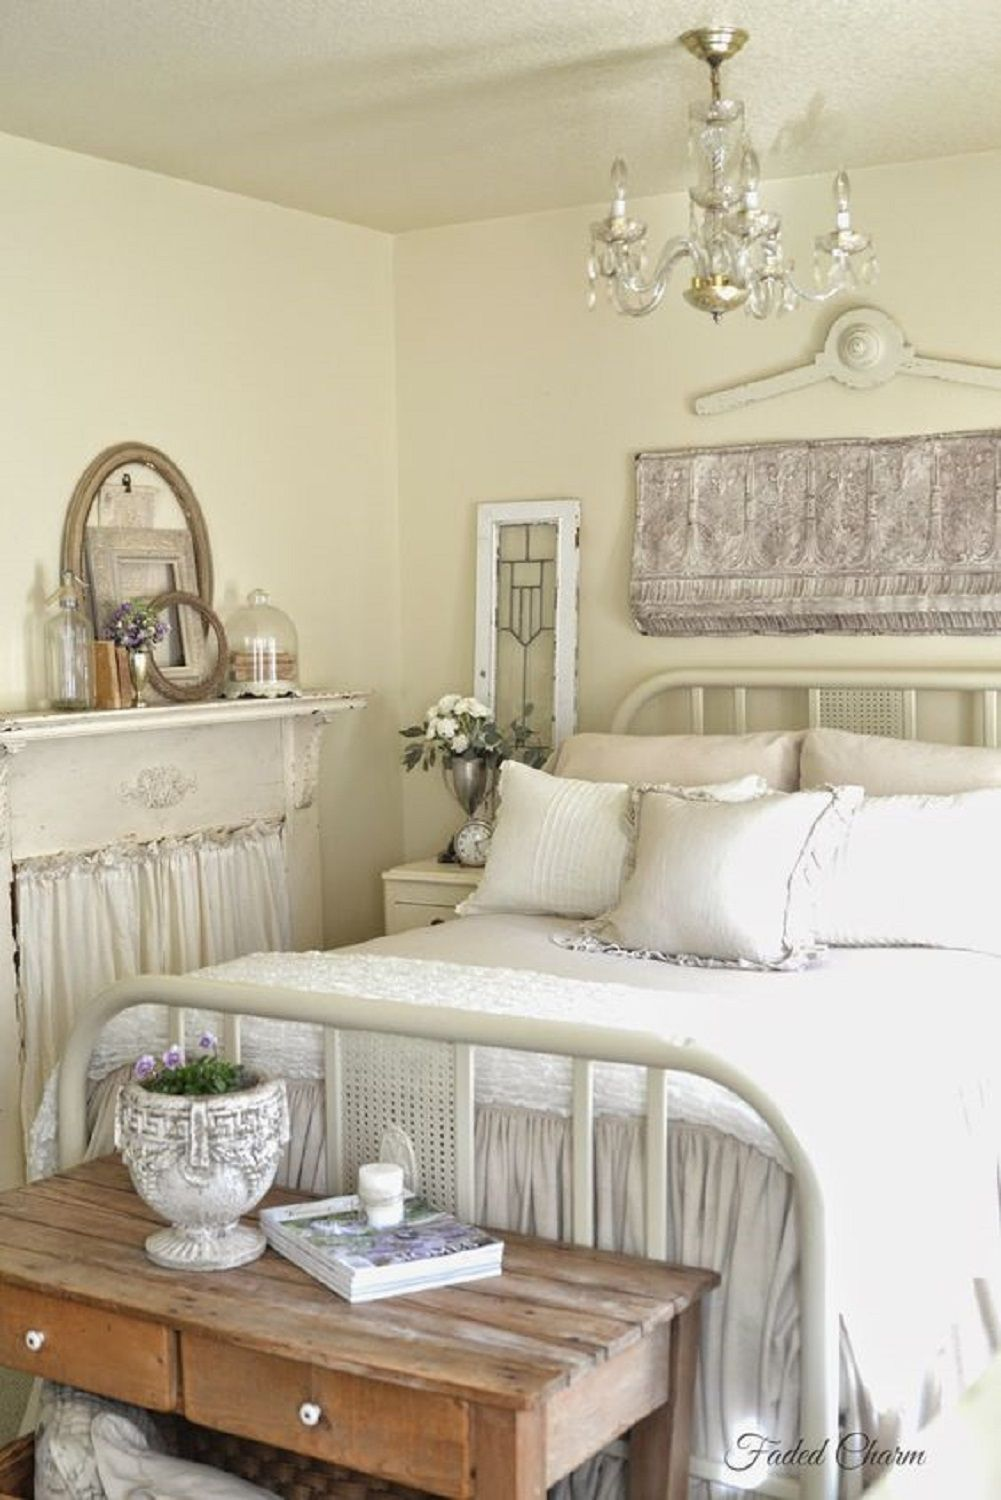 Ideas For French Country Style Bedroom Decor Country Style Bedroom Country Bedroom Decor French Country Decorating Bedroom